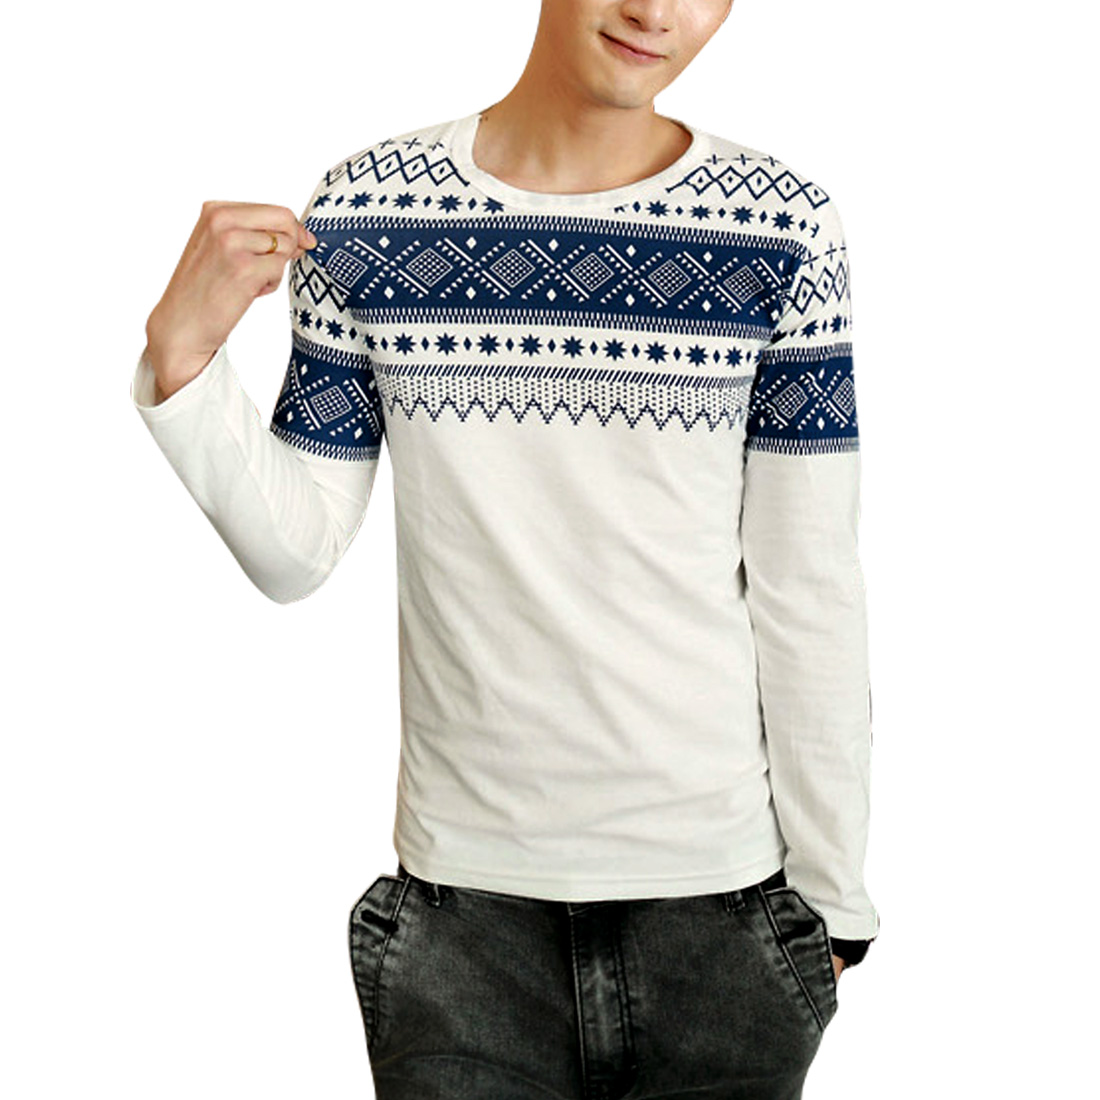 Round Neck Long Sleeve White Spring Top Shirt for Man S